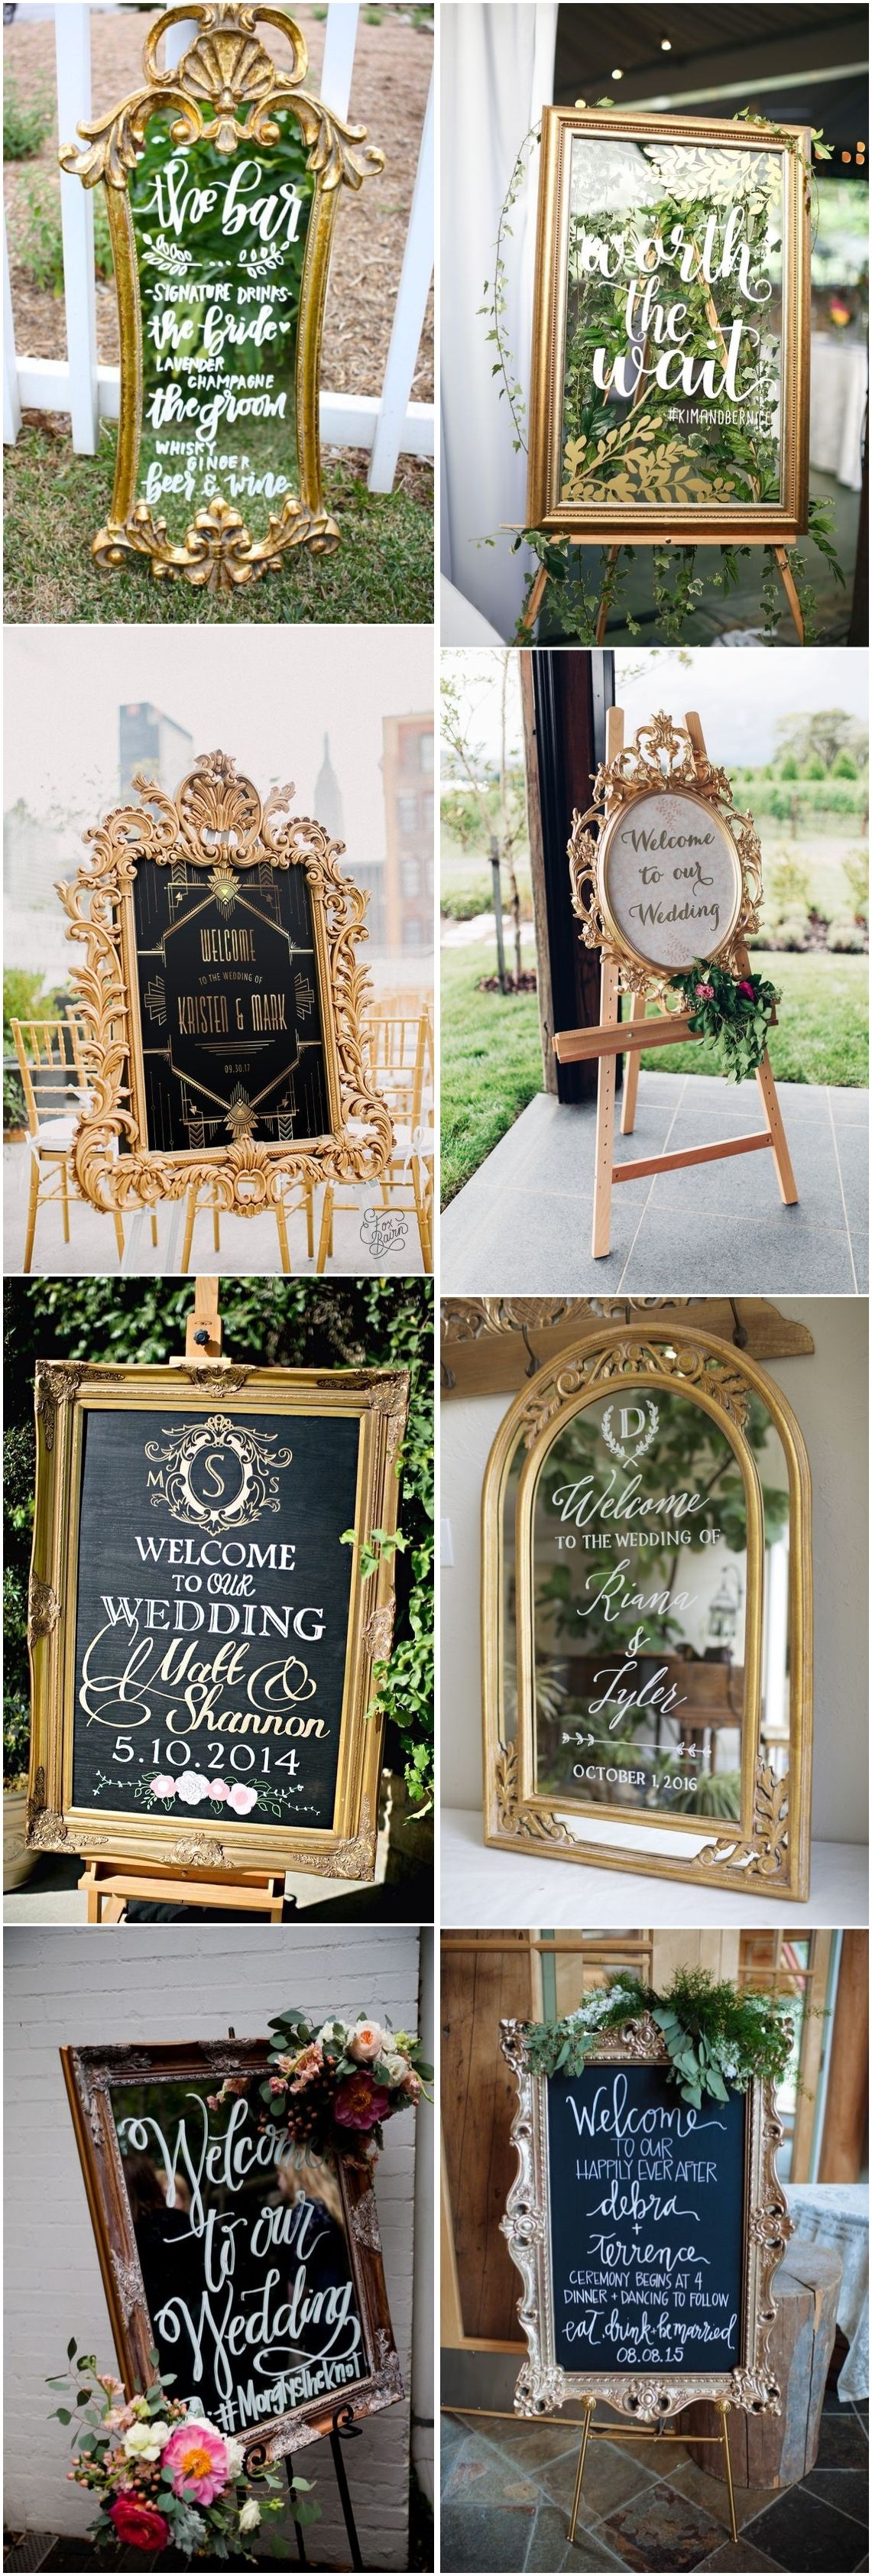 Vintage Wedding Welcome Sign Weddingsigns Gold Vintage Weddingdecor Vintageweddings Http Ww Vintage Wedding Signs Wedding Welcome Signs Wedding Signs